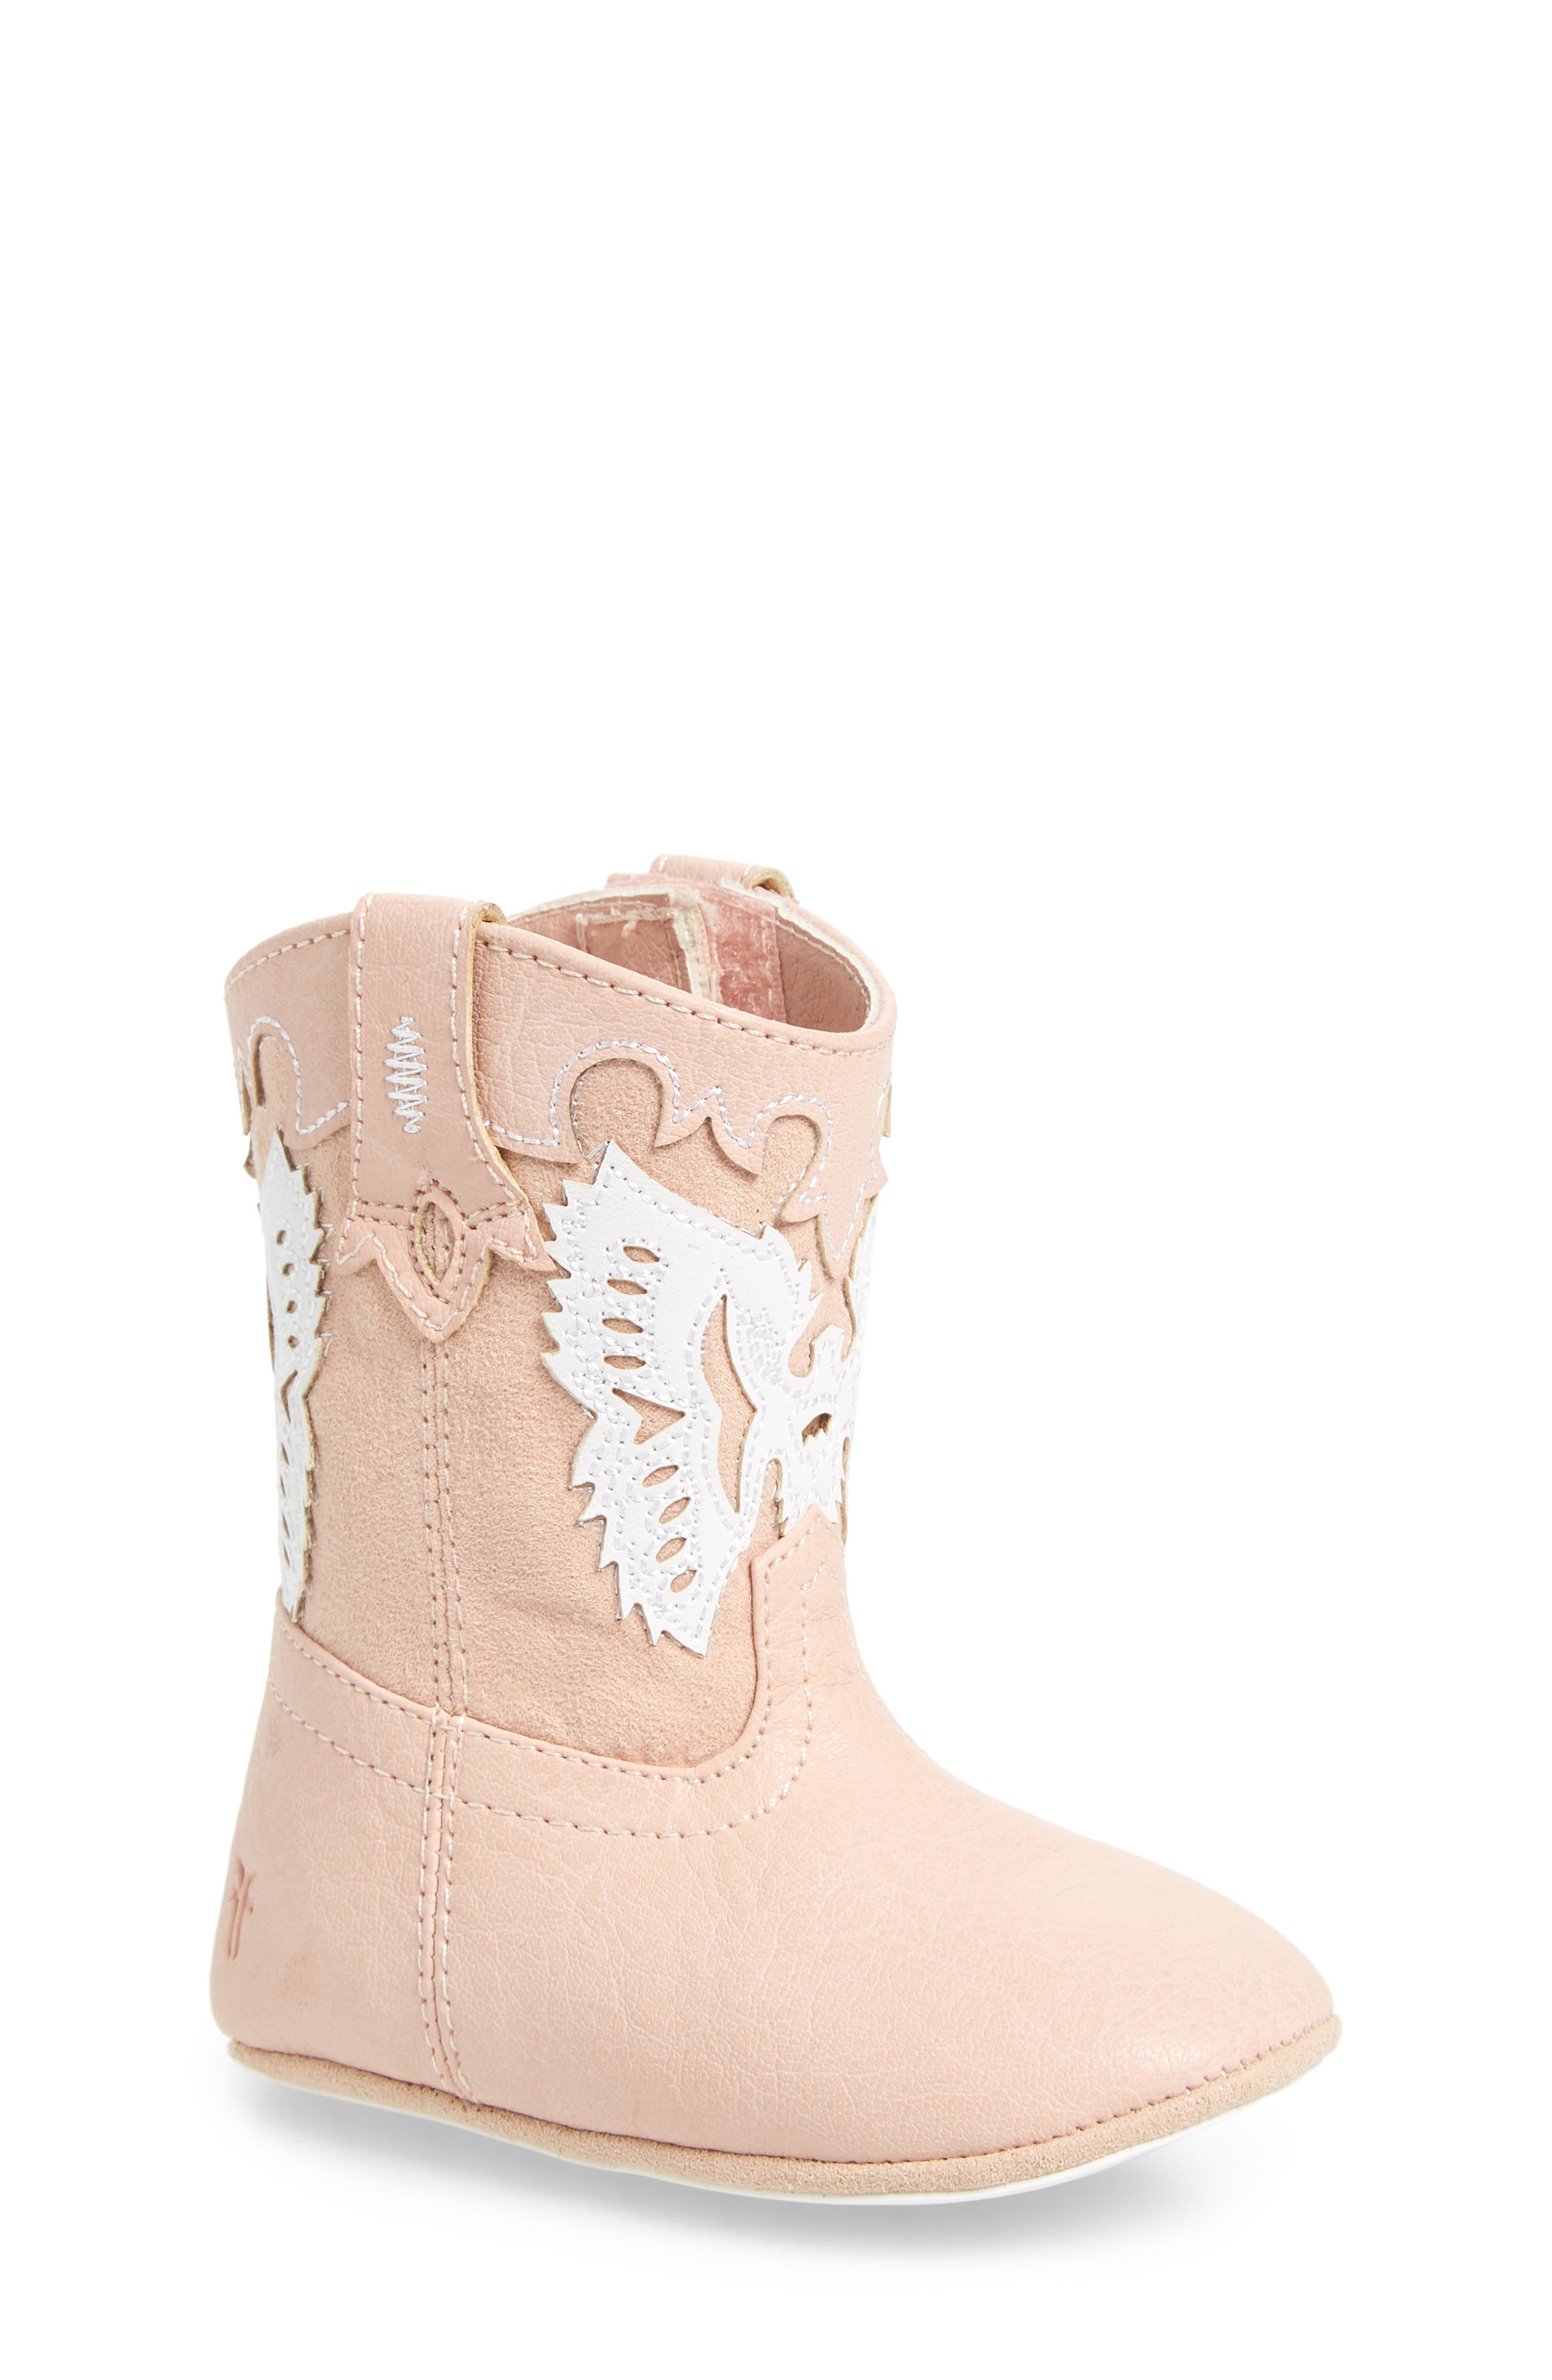 Baby Firebird Western Crib Bootie,                             Main thumbnail 1, color,                             Baby Pink